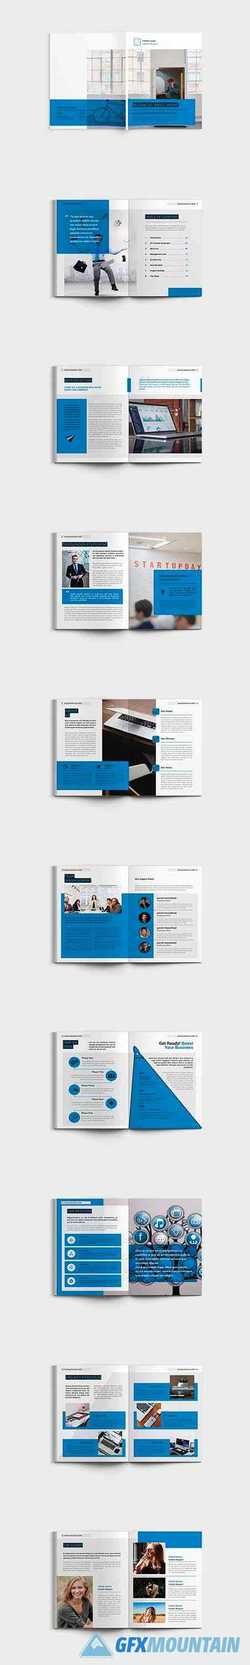 Savana - A4 Business Brochure 3985876